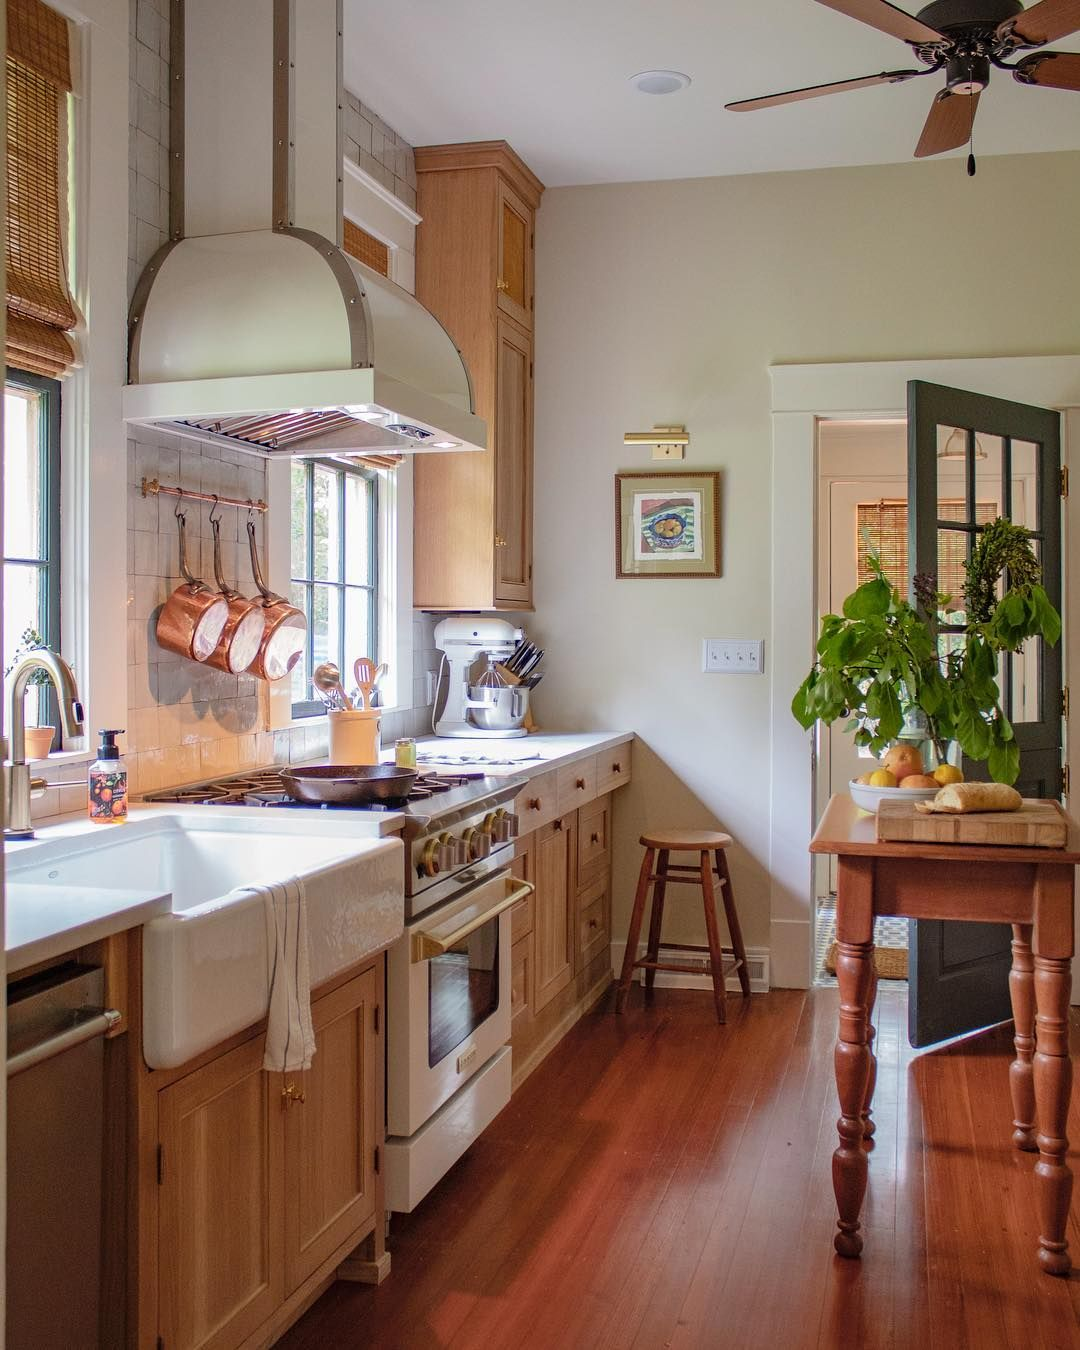 See Erin and Ben Napier's Personal Kitchen Makeover in Their 1925 Craftsman Cottage